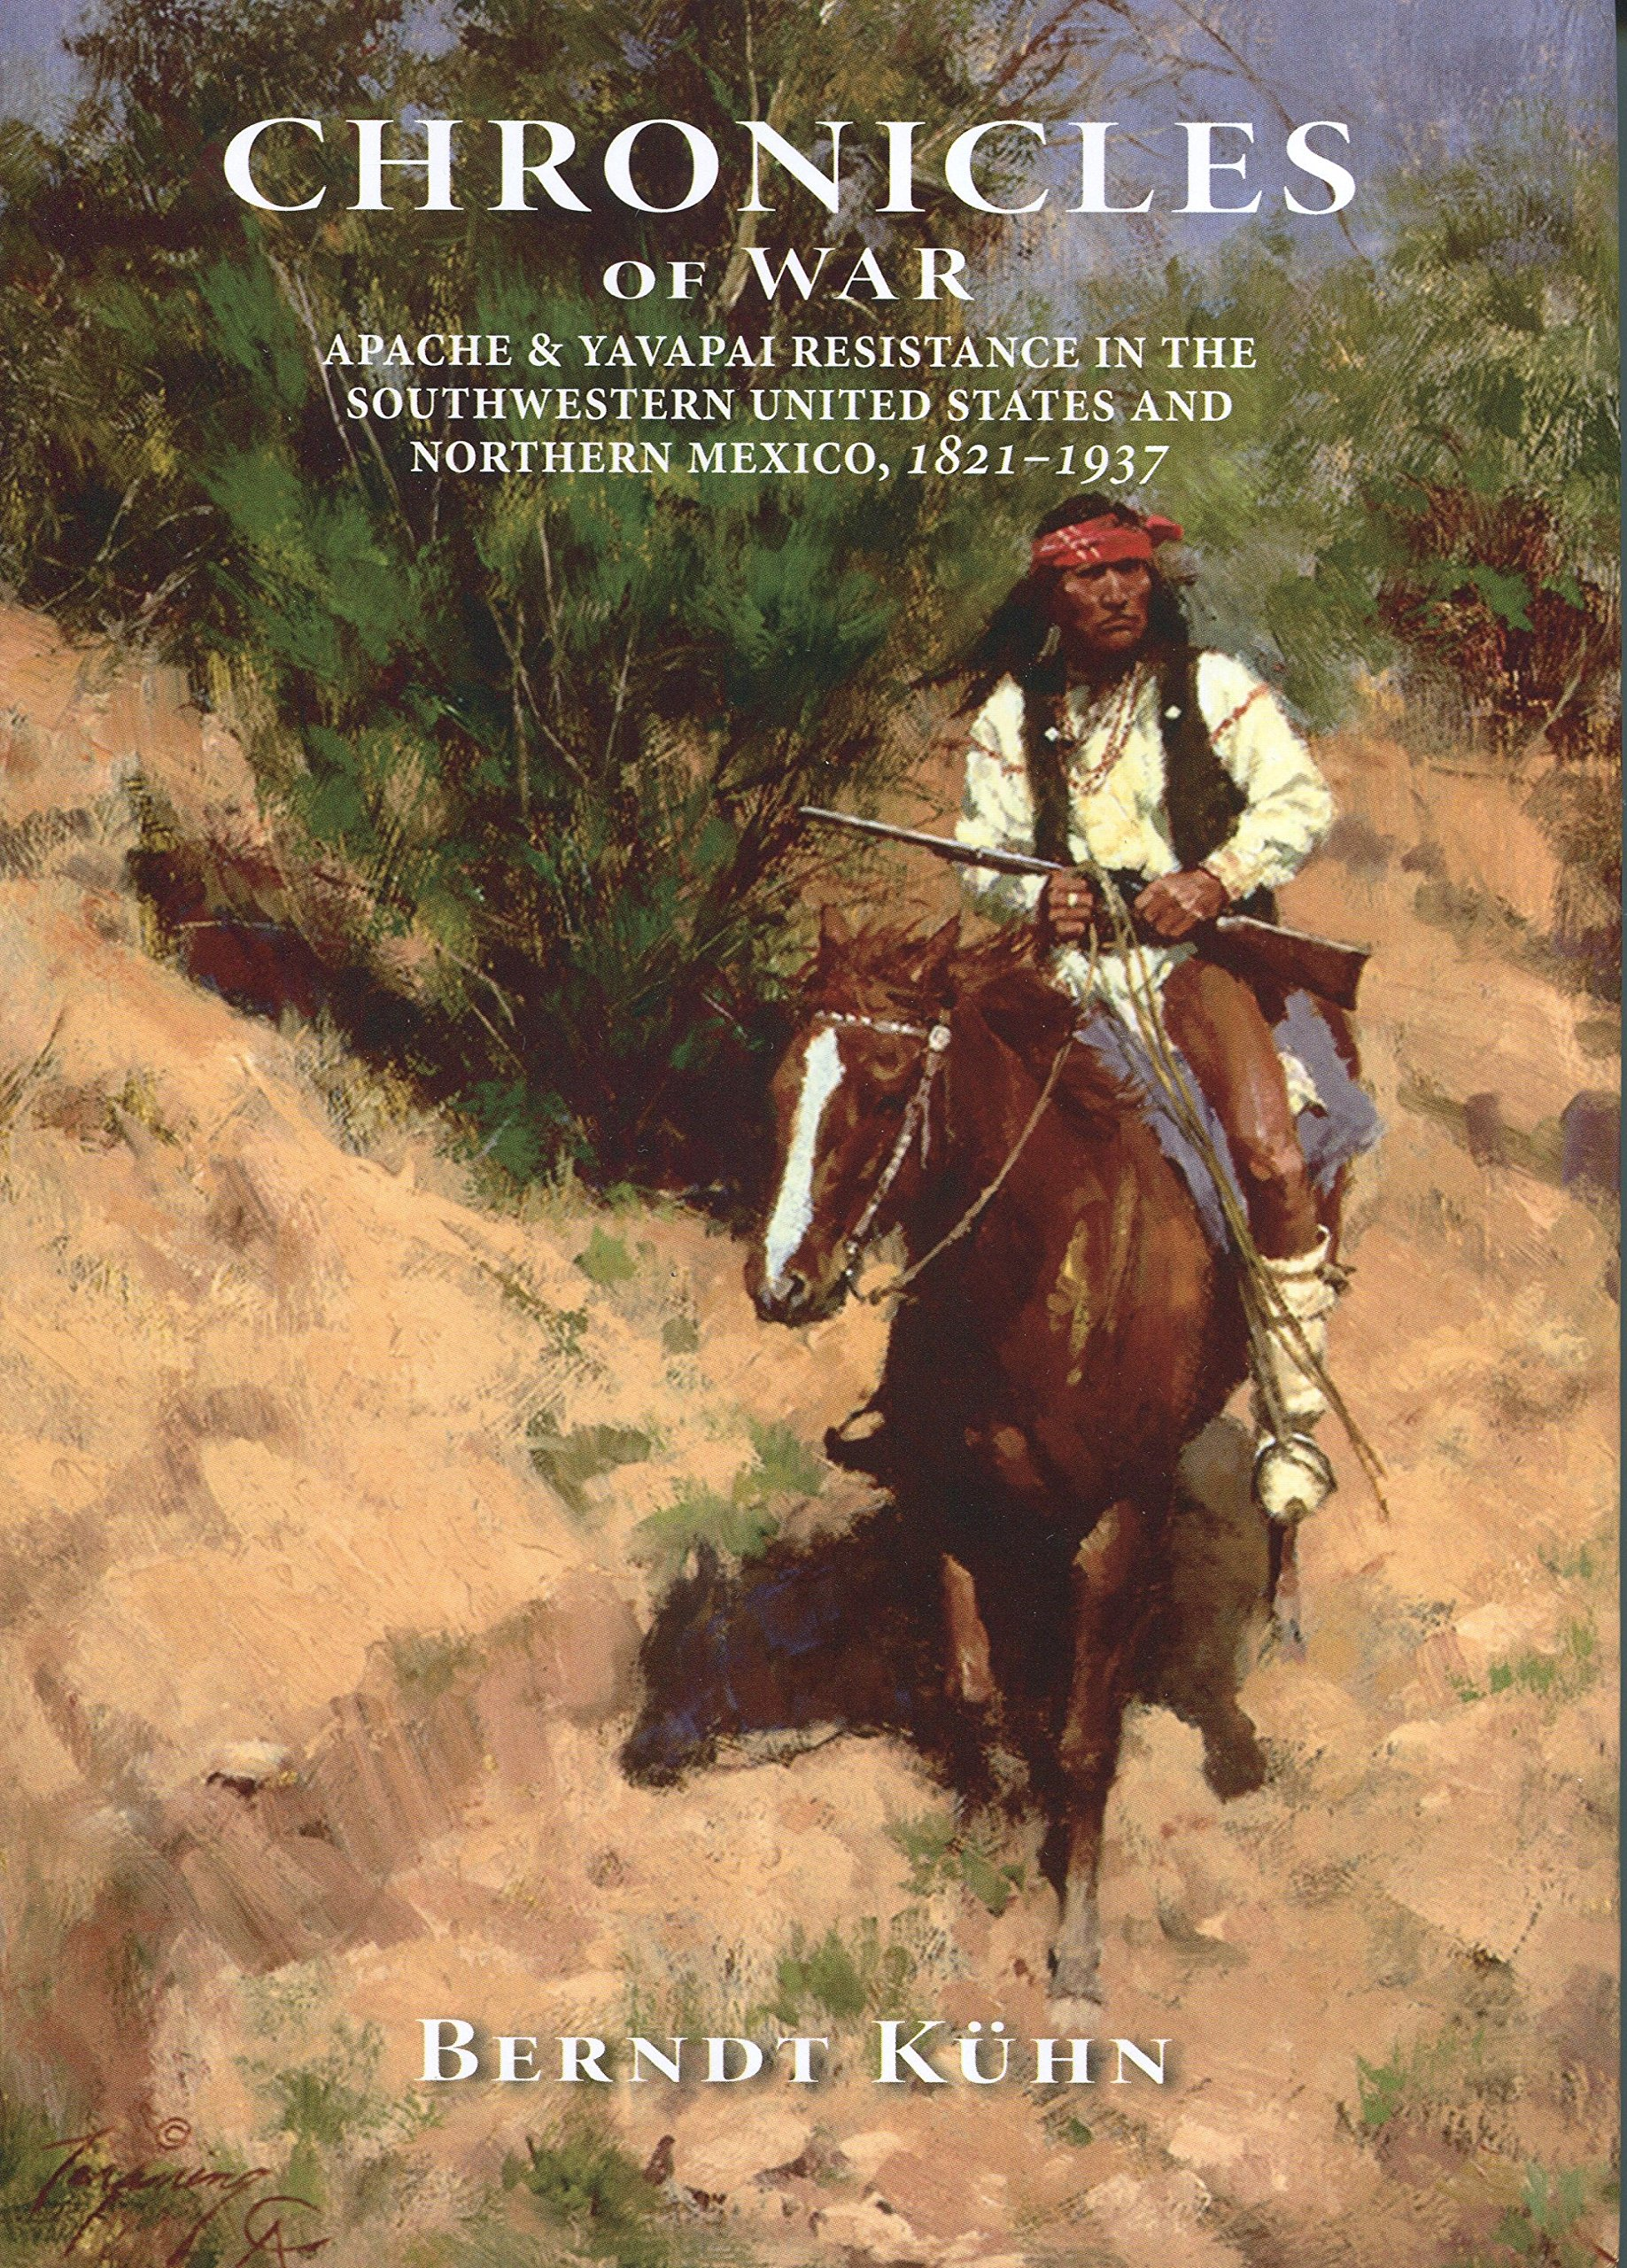 Download Chronicles of War: Apache & Yavapai Resistance In the Southwestern United States and Northern Mexico, 1821-1937 pdf